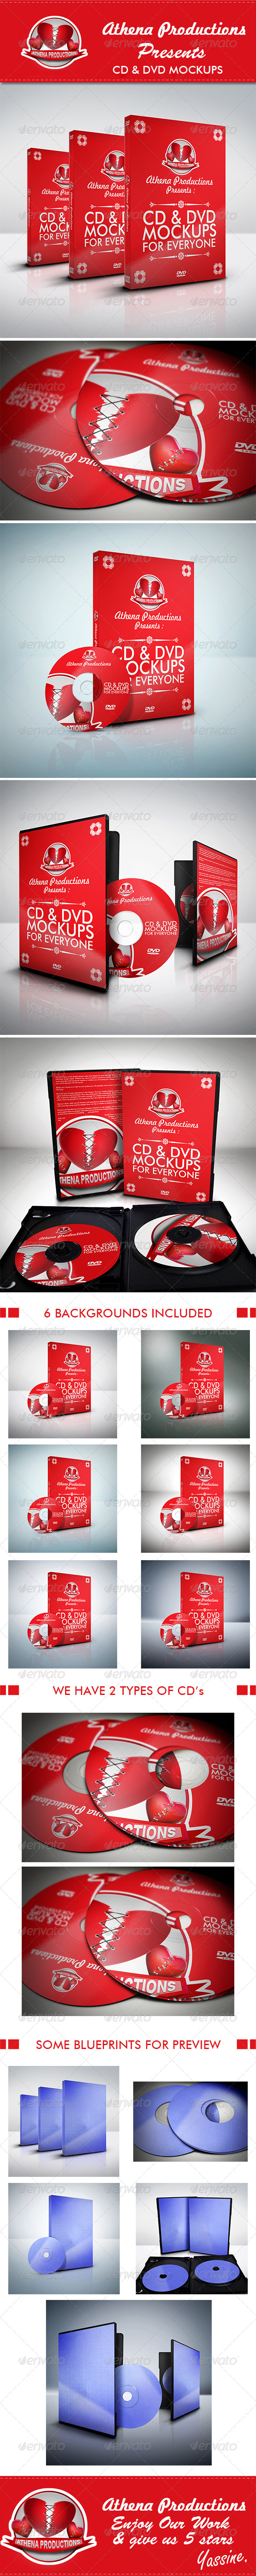 GraphicRiver CD DVD Mockups V.1 5079213